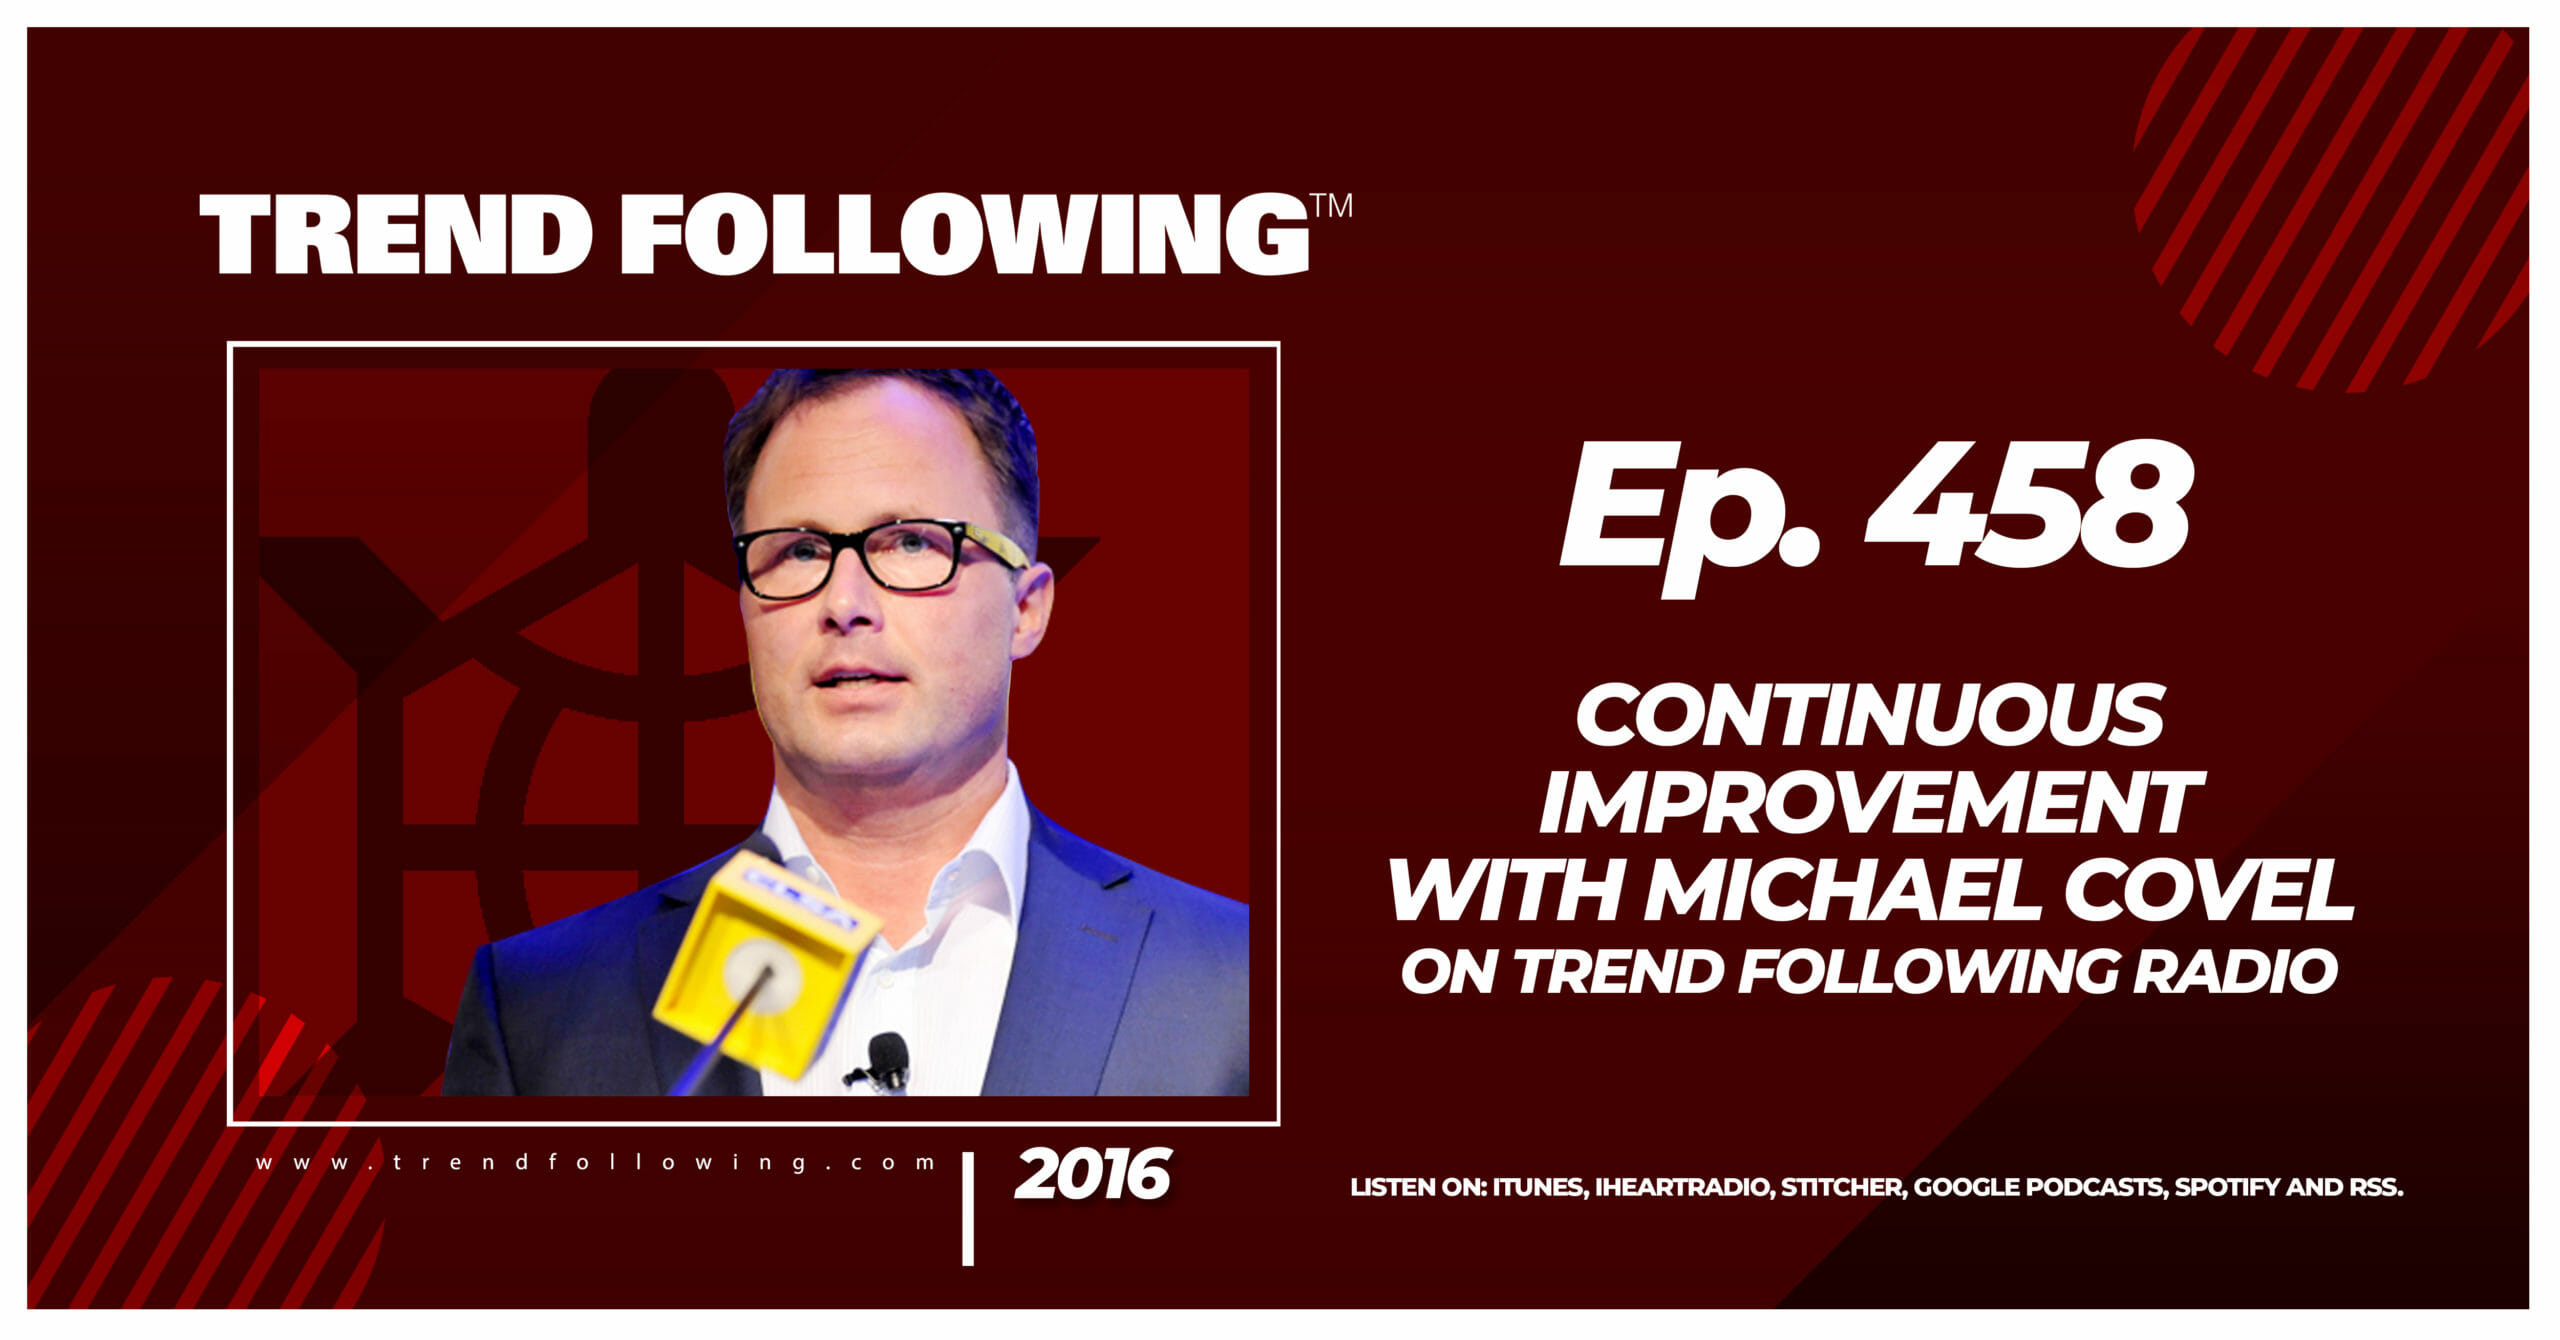 Continuous Improvement with Michael Covel on Trend Following Radio